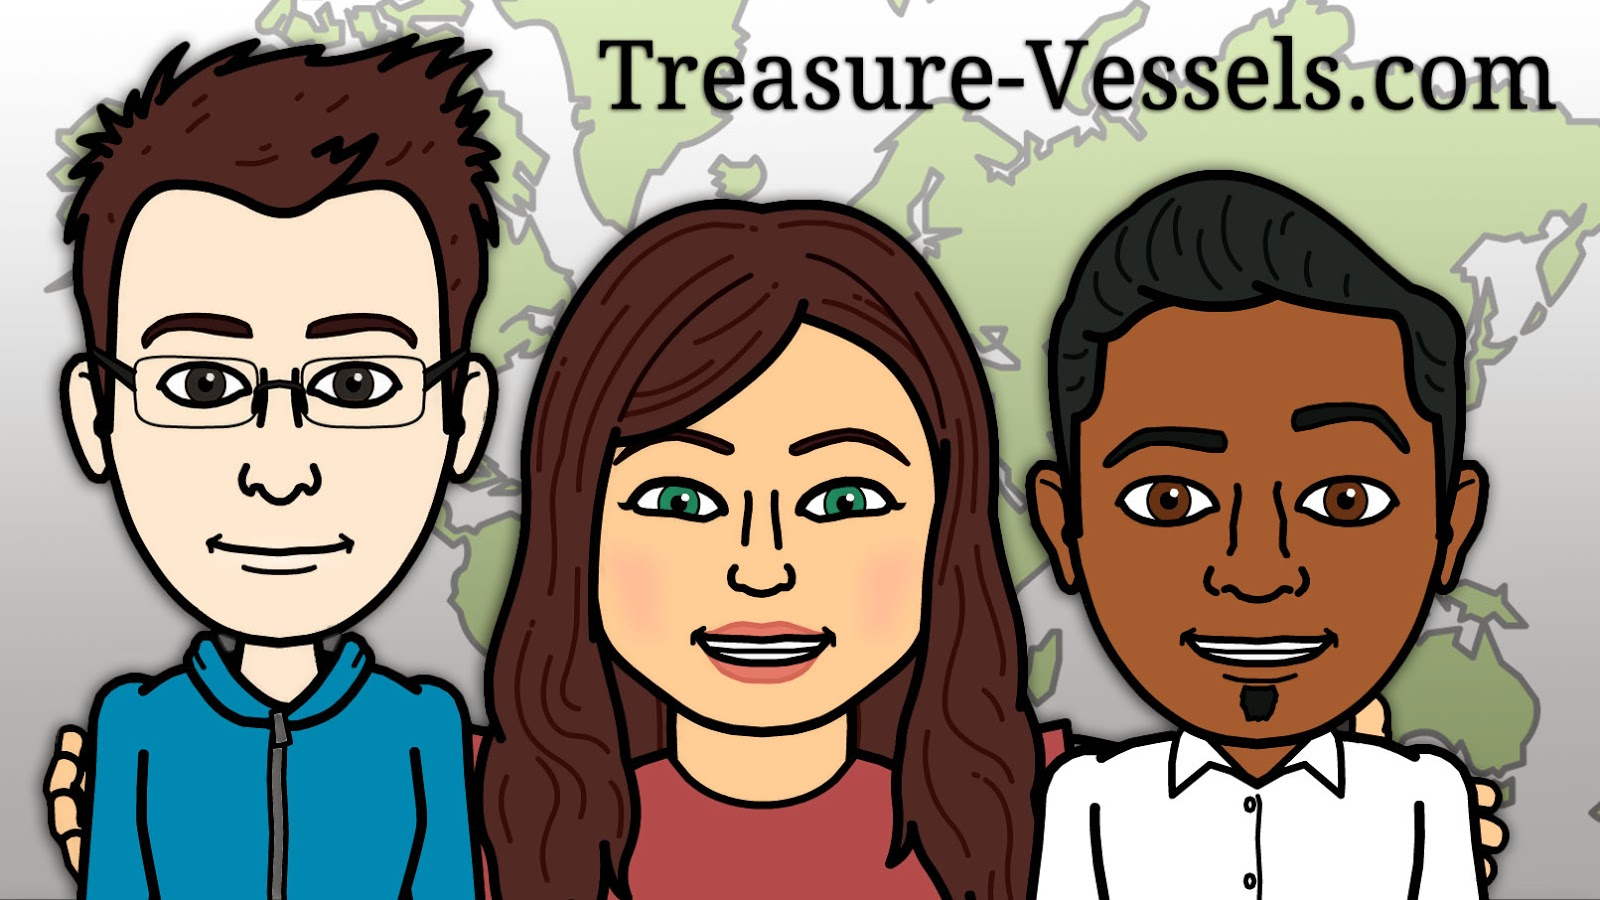 Treasure-Vessels Team